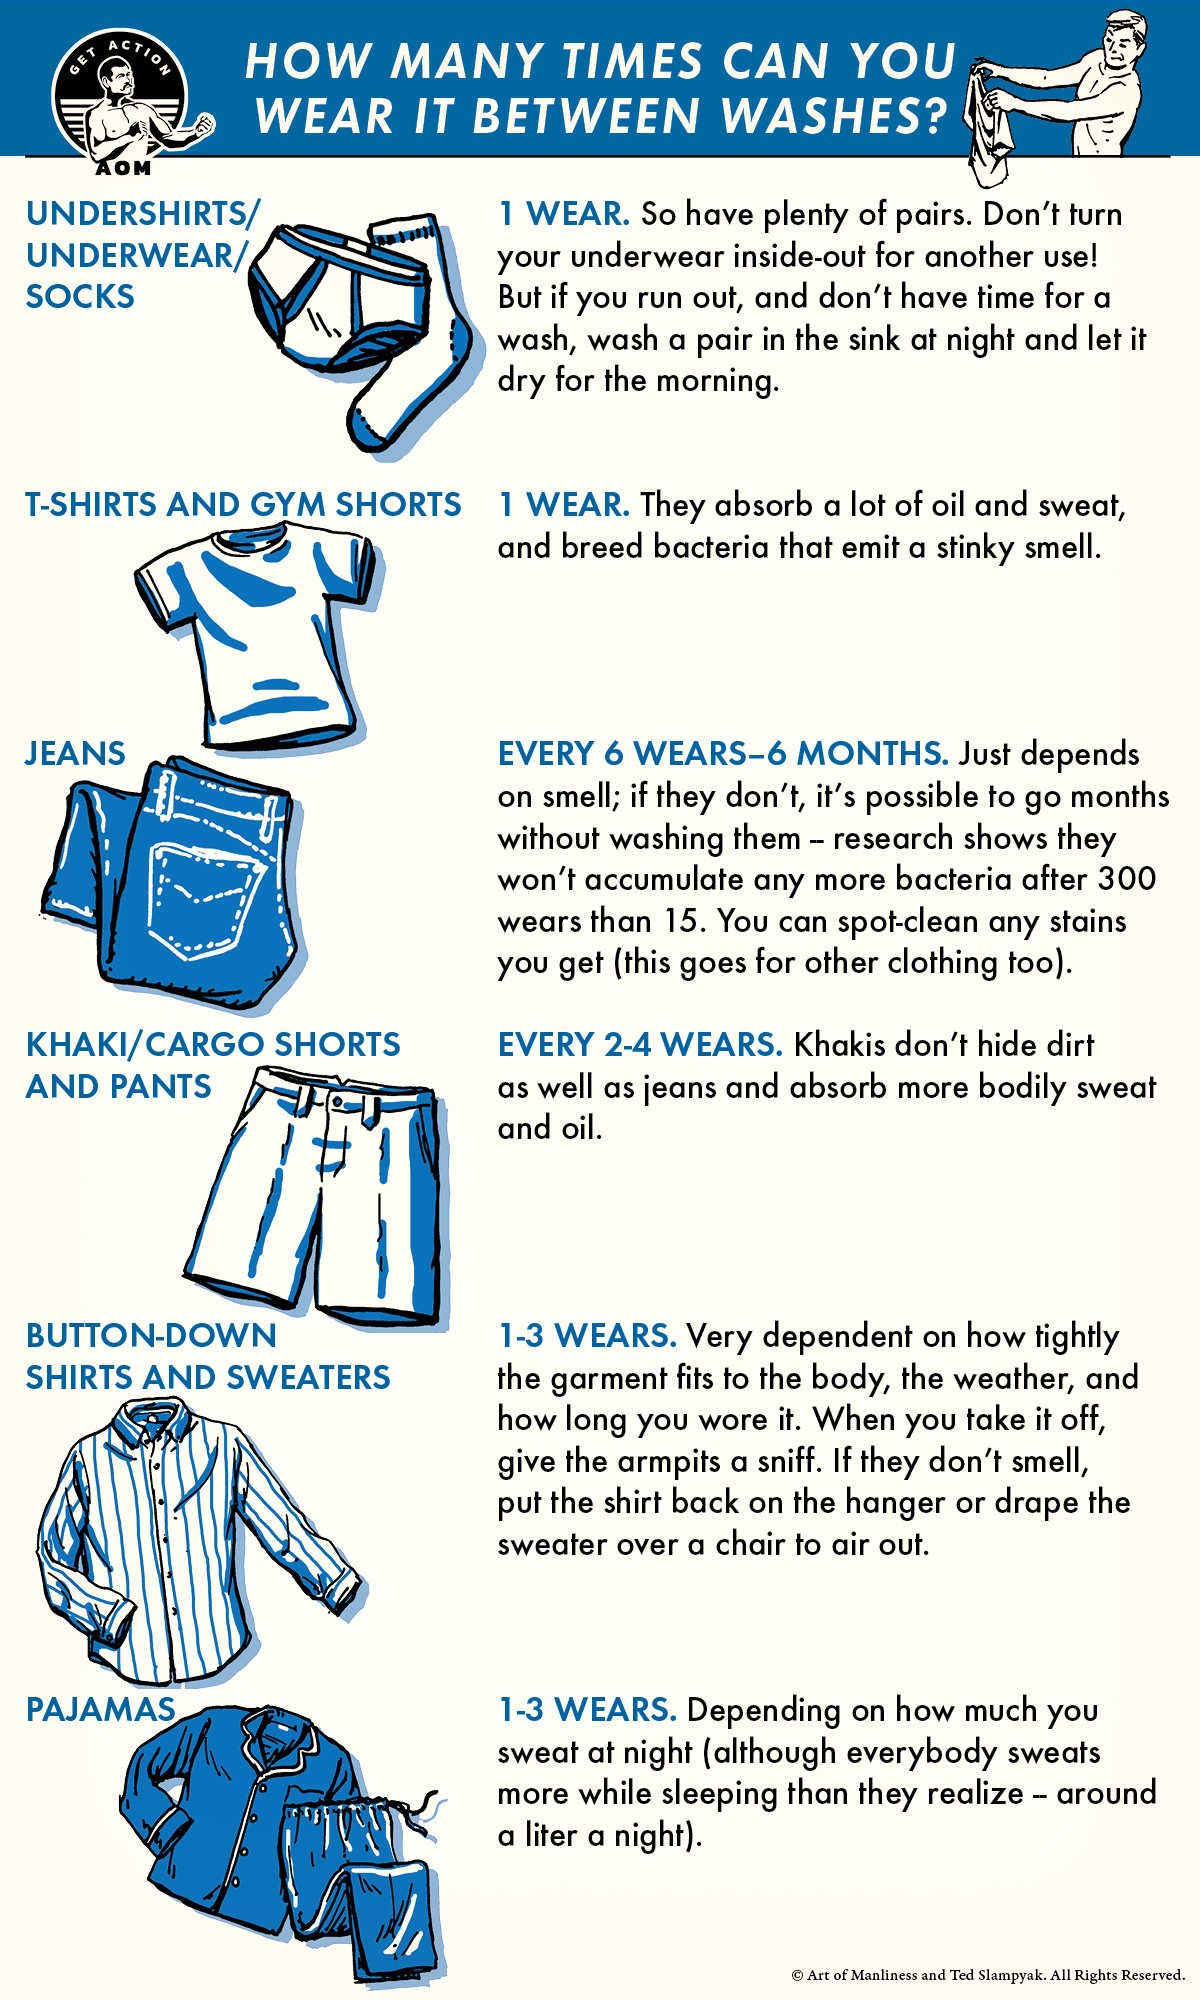 illustrated guide depicting how often different types of clothes need washing.